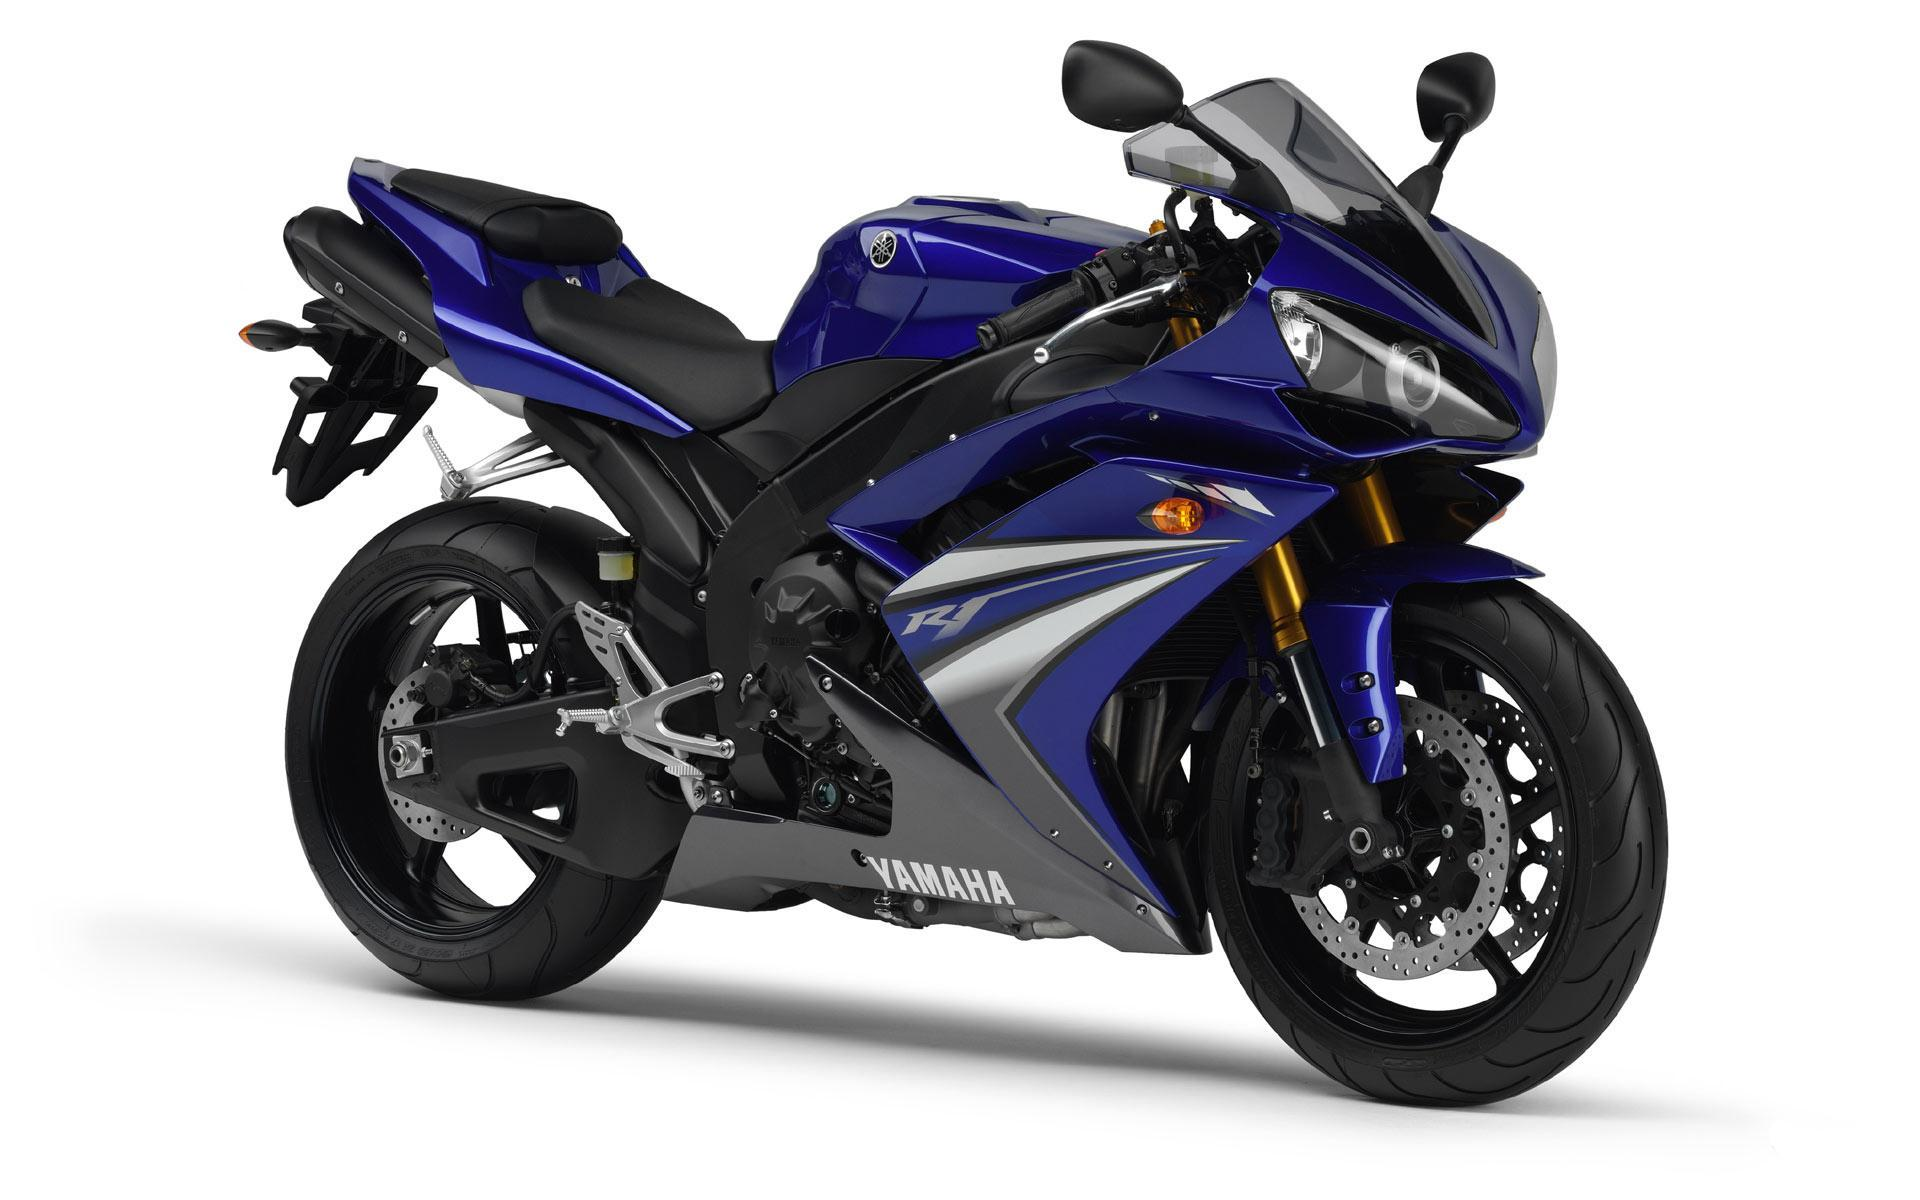 Yamaha R6 2013 Desktop Hd Wallpapers - Takewallpaper